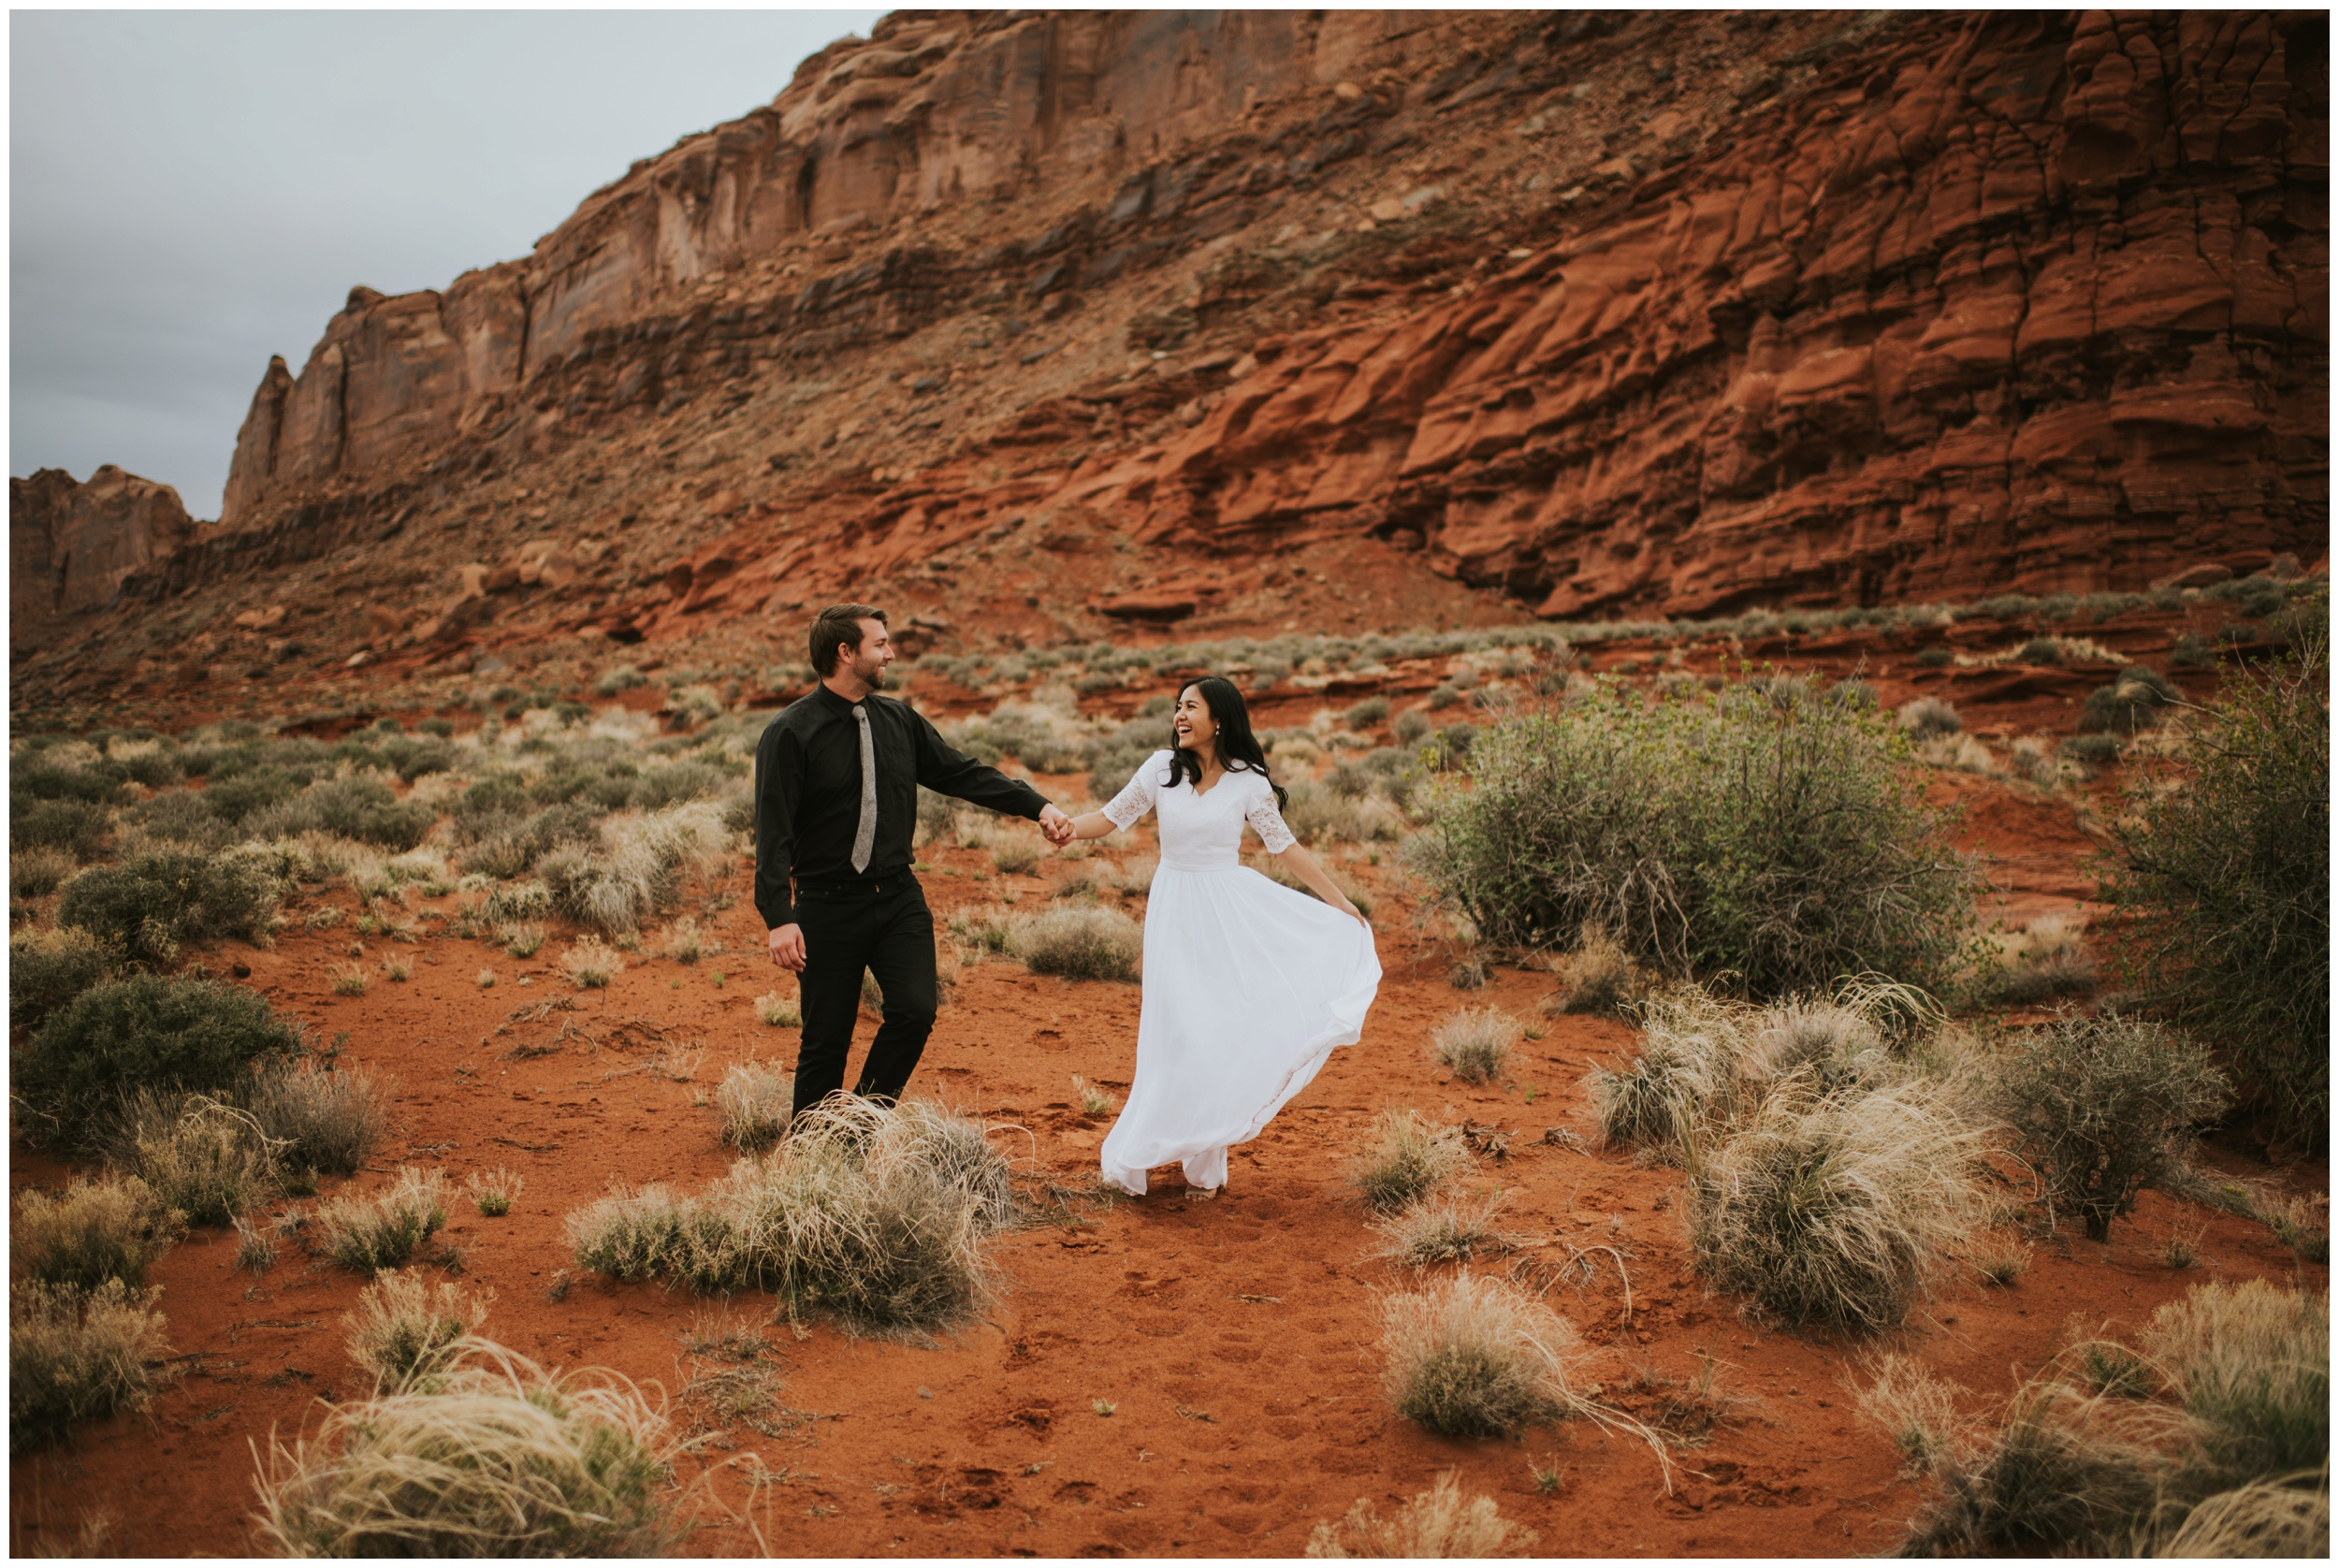 Couple dancing and playing in Moab canyon |Moab Utah, Photographer www.riversandroadsphotography.com